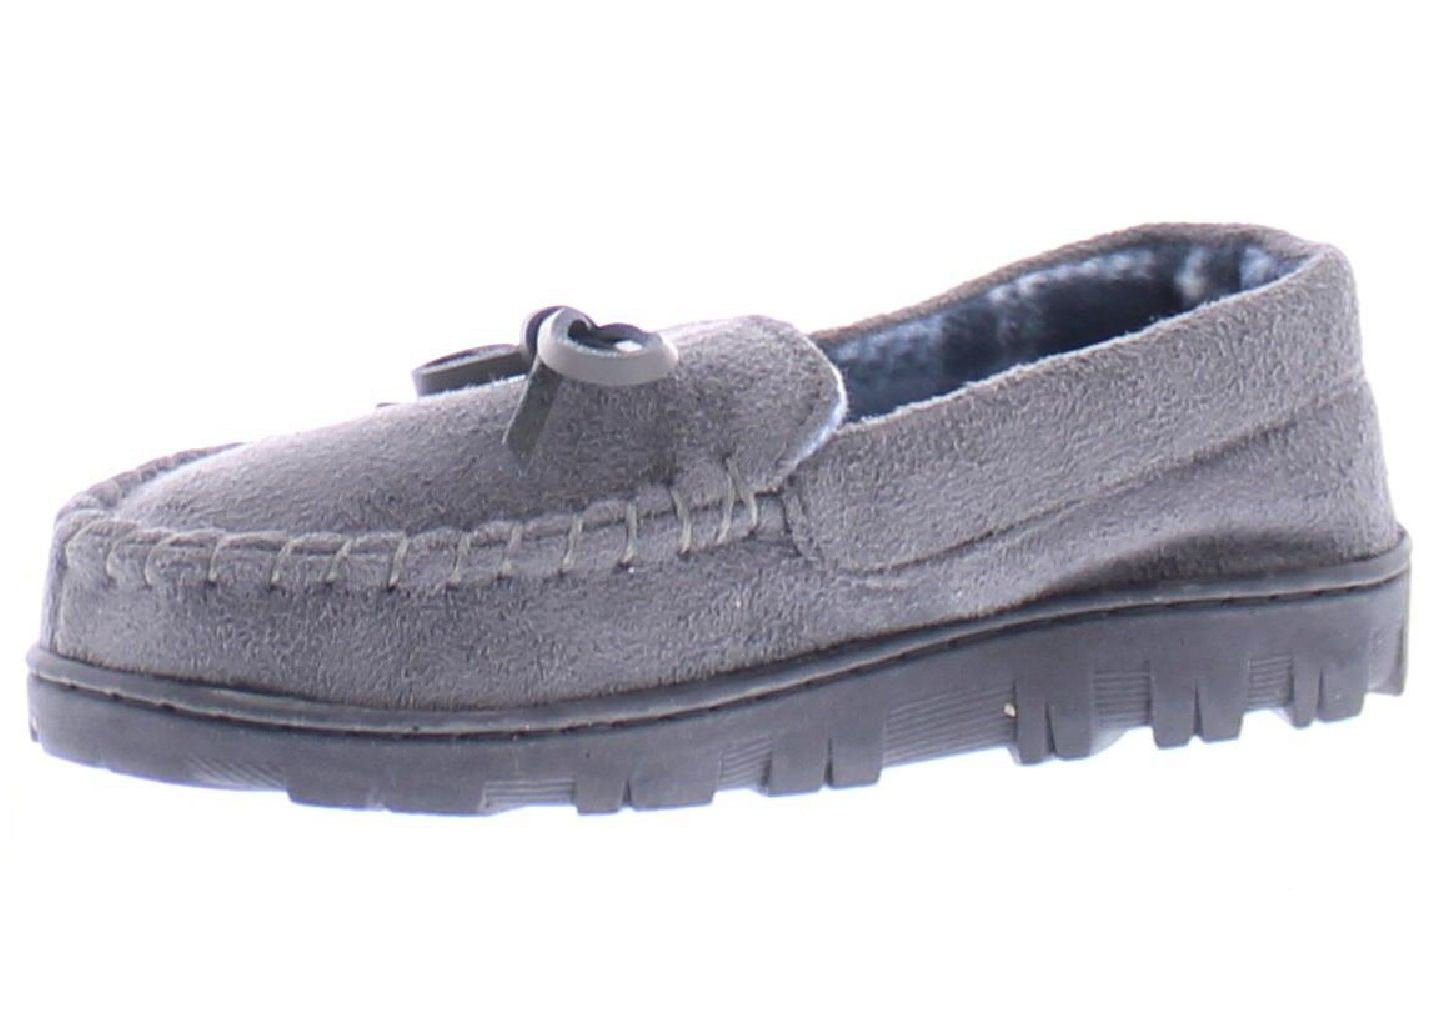 Gold Toe Boy's Faux Suede Flannel Plaid Fleece Shearling Lined Slip-On Moccasin Slipper Loafer Shoes Grey M 13-1